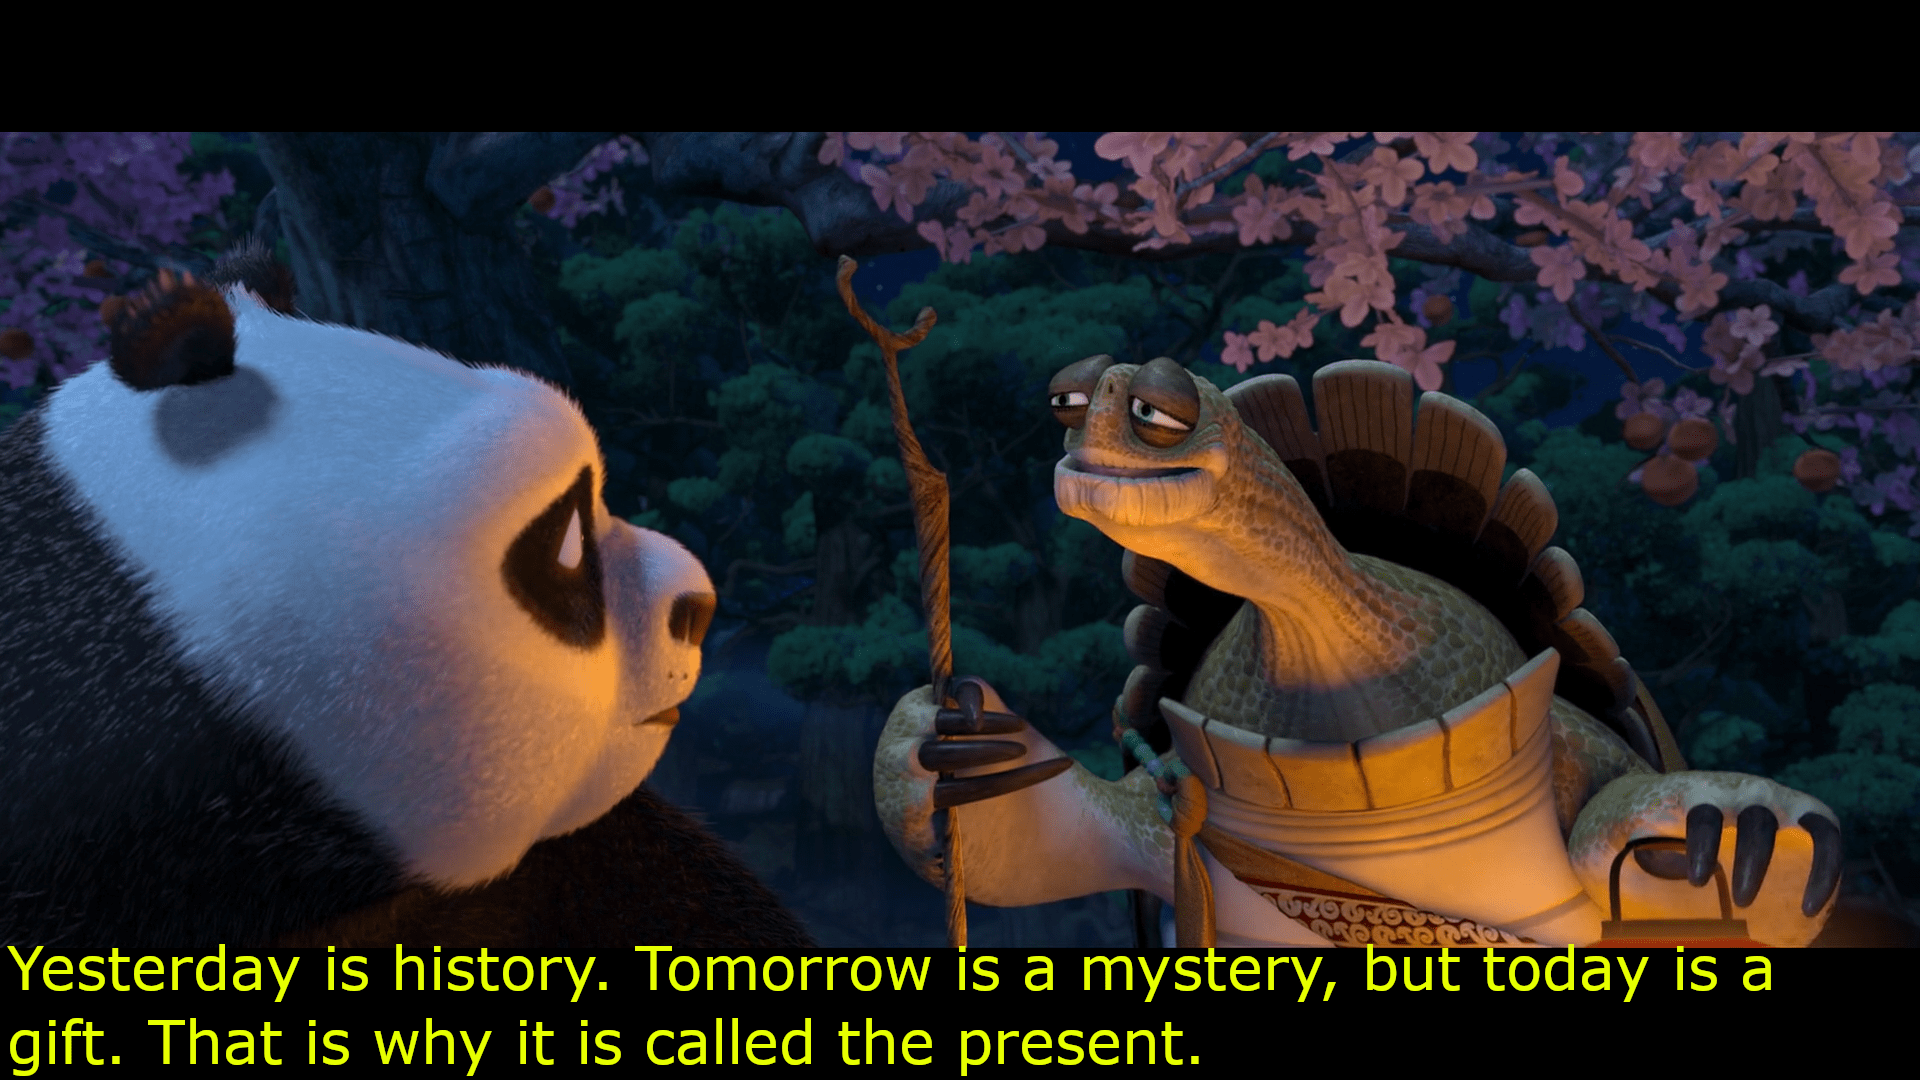 [Image] In the wise words of Master Oogway, never dwell on that which has already happened. Regret of (in)actions in the past and anxiety of events in the future will consume you entirely. Live in the present moment.